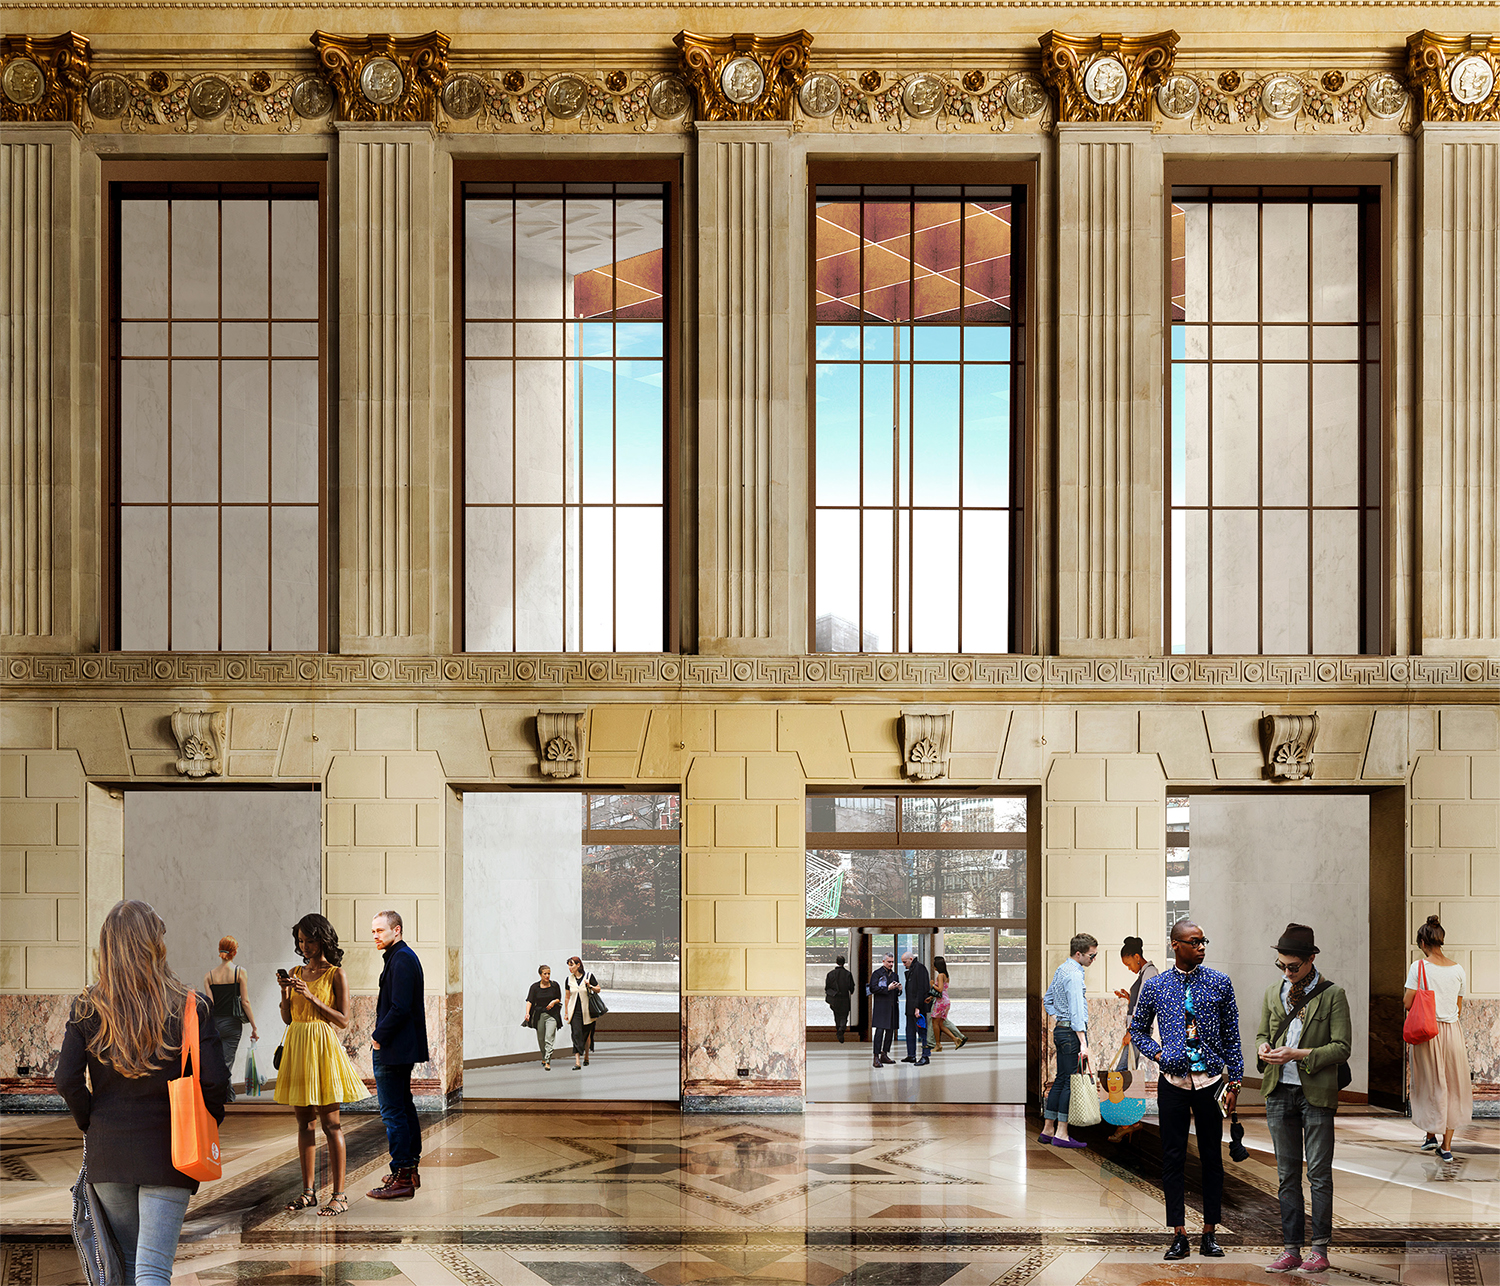 Rendering of the view from the Dime Savings Bank at 9 DeKalb Avenue looking to the atrium of 340 Flatbush Avenue Extension. Credit: SHoP